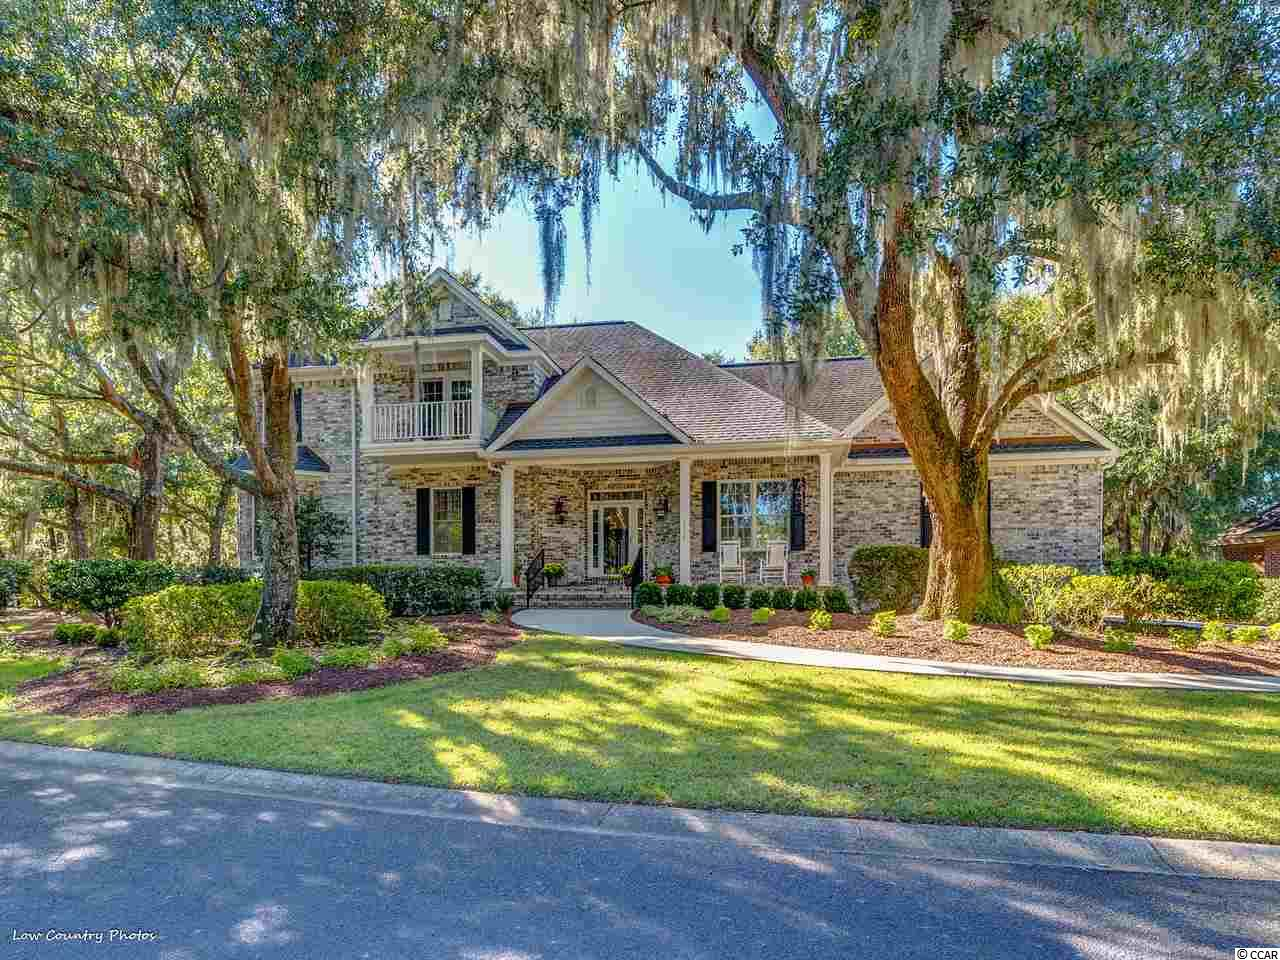 MOTIVATED SELLER. One of a kind estate home in the beautiful preserve community of Willbrook Plantation. Premier Lot. This all brick home sits on 1.5 lots and .76 acres with a stunning, private setting on cul-de-sac. Backs to natural preserve area and fronts pond and Willbrook Plantation golf course. Immaculate home. High end finishes. Kitchen has Electrolux gas range and double ovens, Bosch dishwasher, island with 2nd sink and breakfast area. Large prep room next to kitchen with cabinets for pantry, full sink and ½ bath. The living room has a gas fireplace, custom built-ins, additional half bath and extends to the large screened porch. First floor master retreat with en-suite bathroom, large dressing room and sitting area. The spa like master bath has his and her vanities, luxurious soaking tub and custom shower. There are 3 or 4 additional bedrooms.  Two of those bedrooms have their own private porch. One bedroom has custom desk space that is perfect for a home office. Additional space upstairs, 24 X 16, can be up-fitted for additional bedroom/bath since plumbing, electric and HVAC are roughed in. Tremendous storage space throughout.  Outdoor living has an immense screened porch, private deck and wonderful front porch. Meticulously cared for and updated. The garage, with workshop space, is immaculate.  Community pool, gated access and private beach access to Litchfield by the Sea.